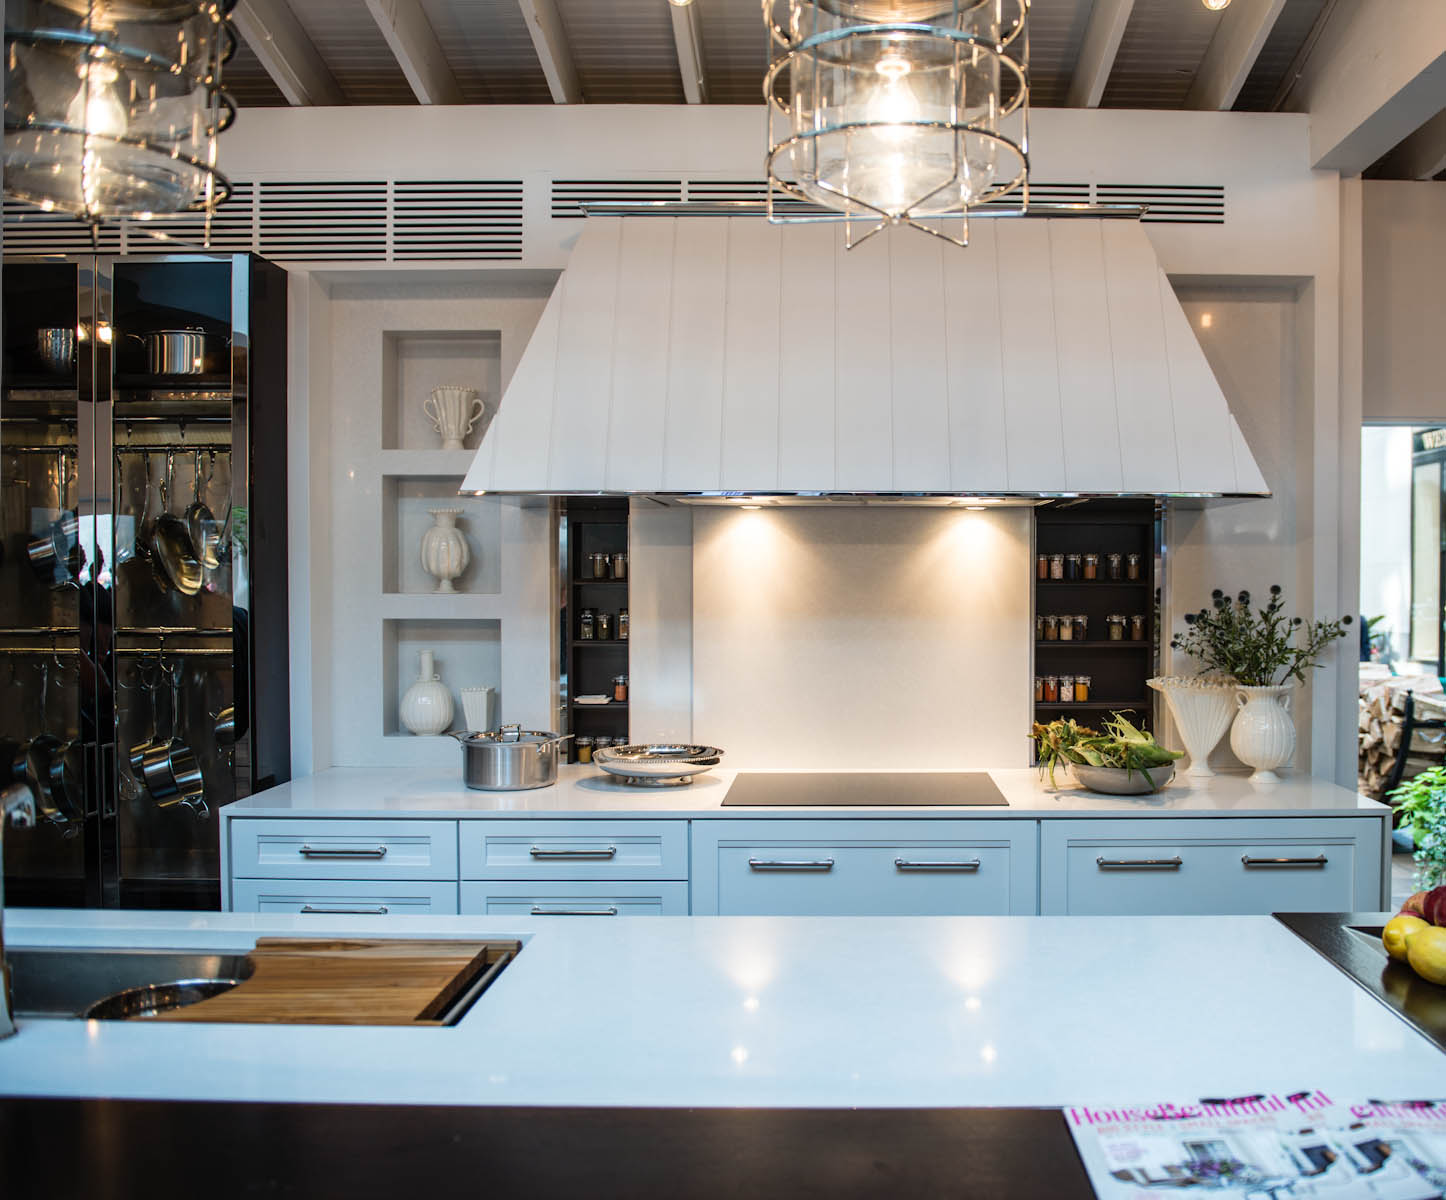 House Beautiful Kitchen Of The Year 2012 Flickr